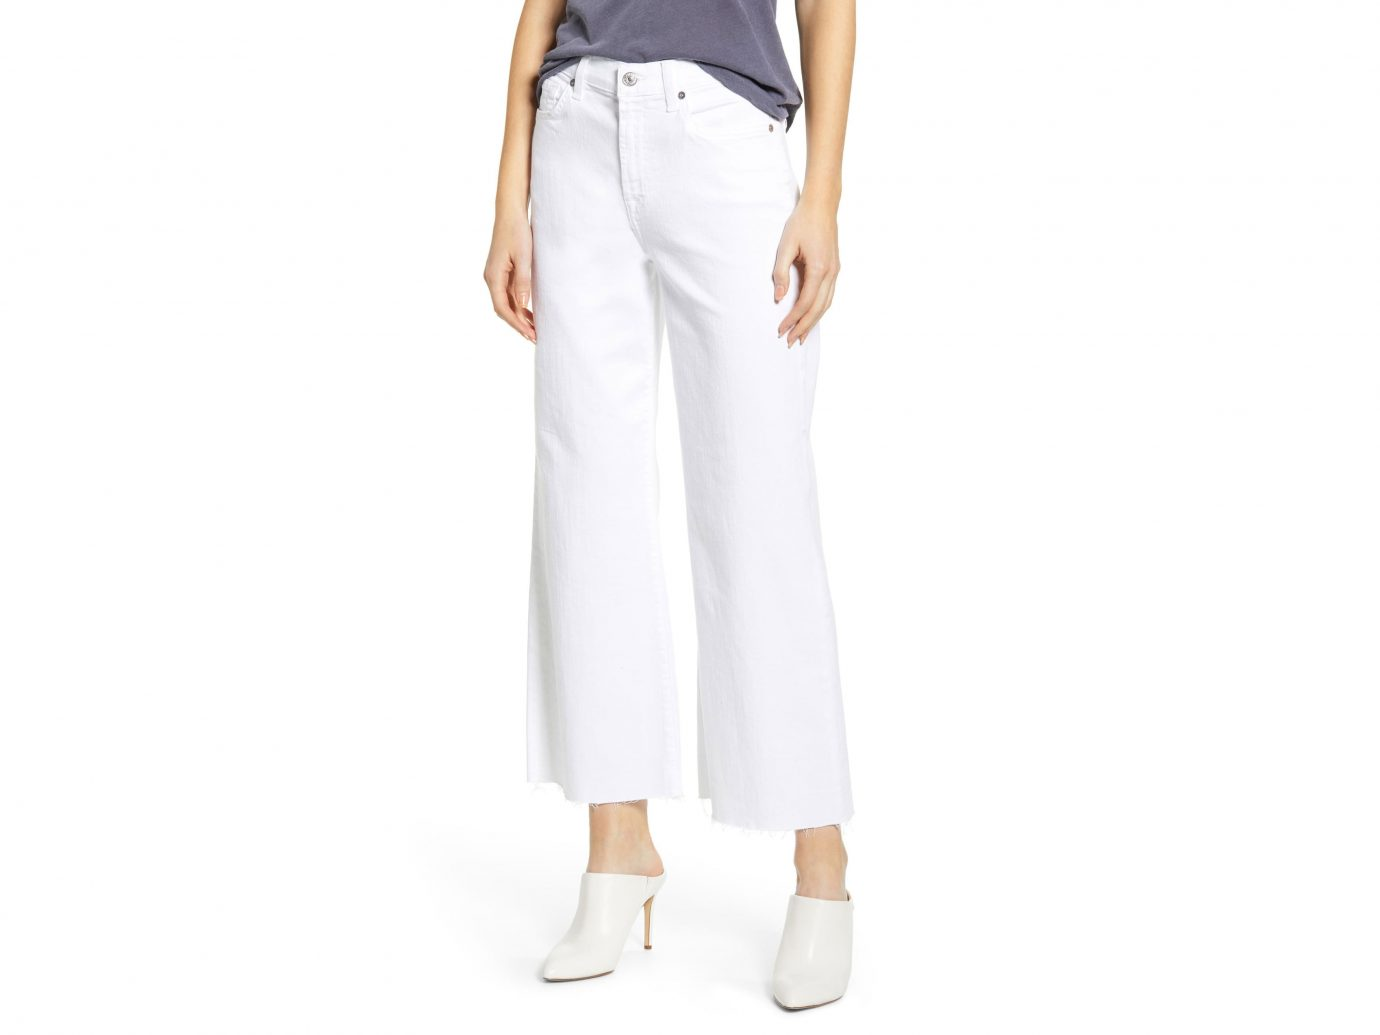 7 For All Mankind Alexa High Waist Crop Wide Leg Jeans